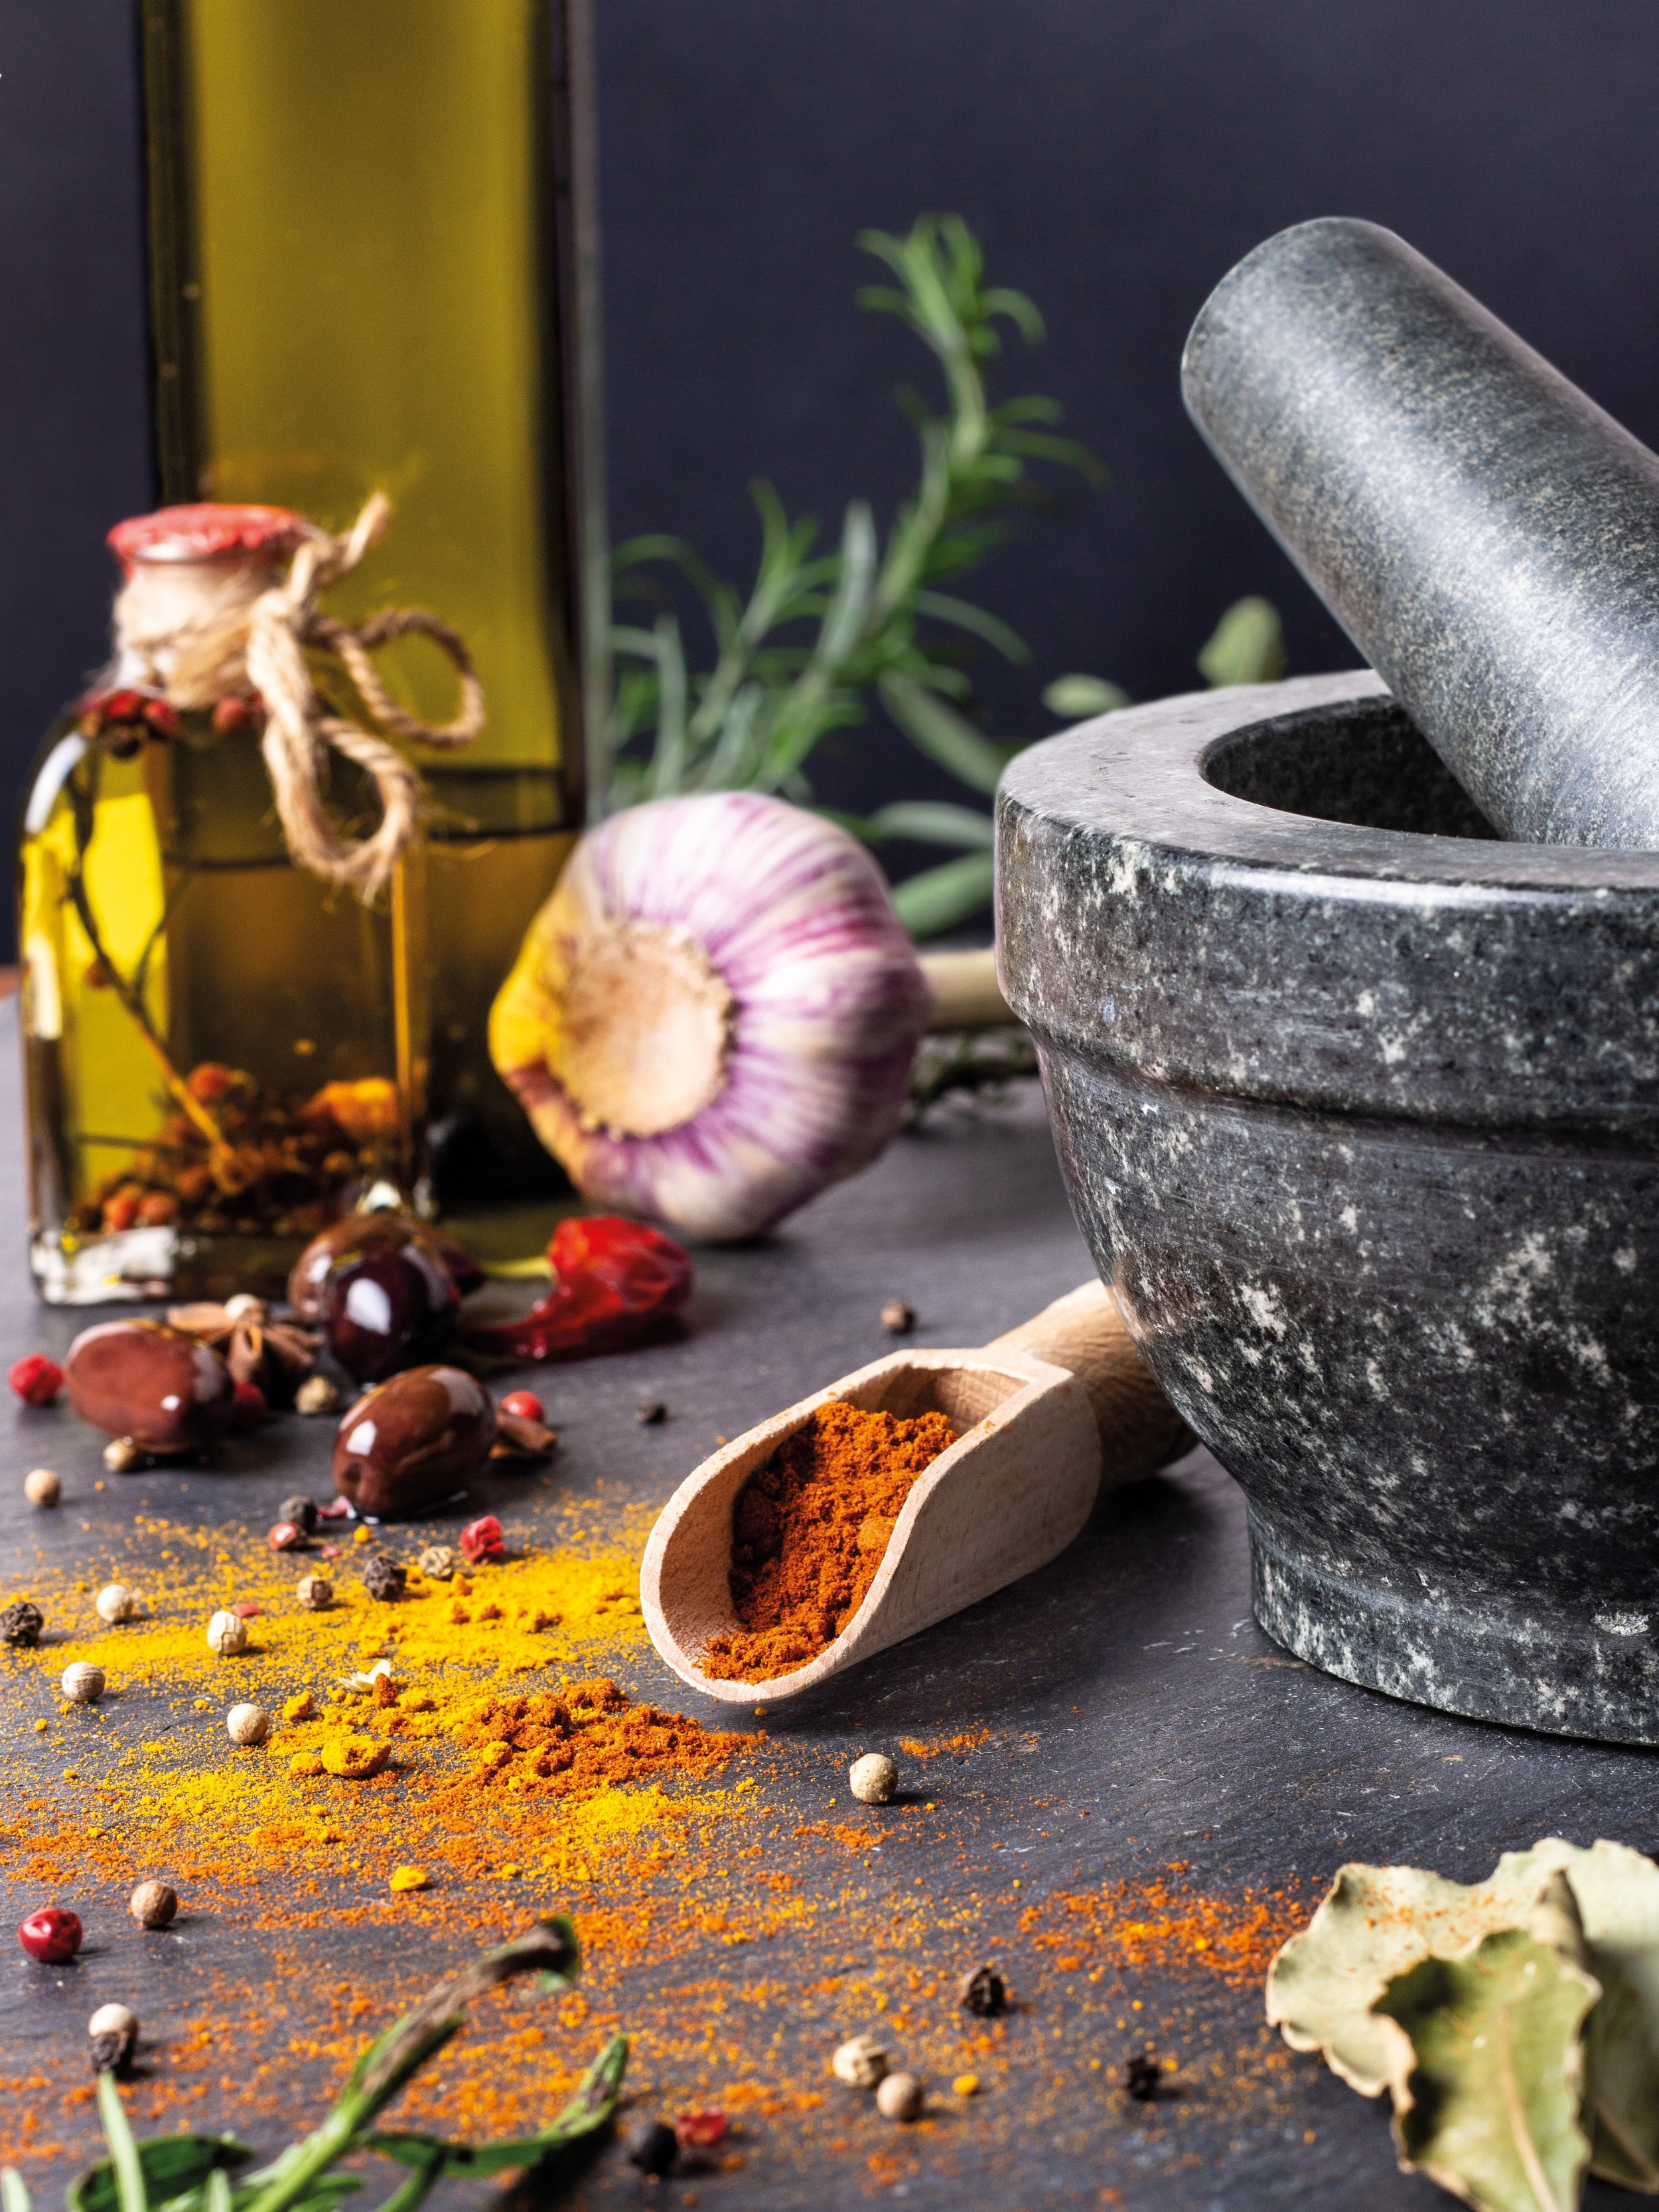 Everything you Need to Know for a Successful Pantry Reset Completely Golden Blog Garlic and Olive Oil with Spices and Mortor and Pestle.jpg